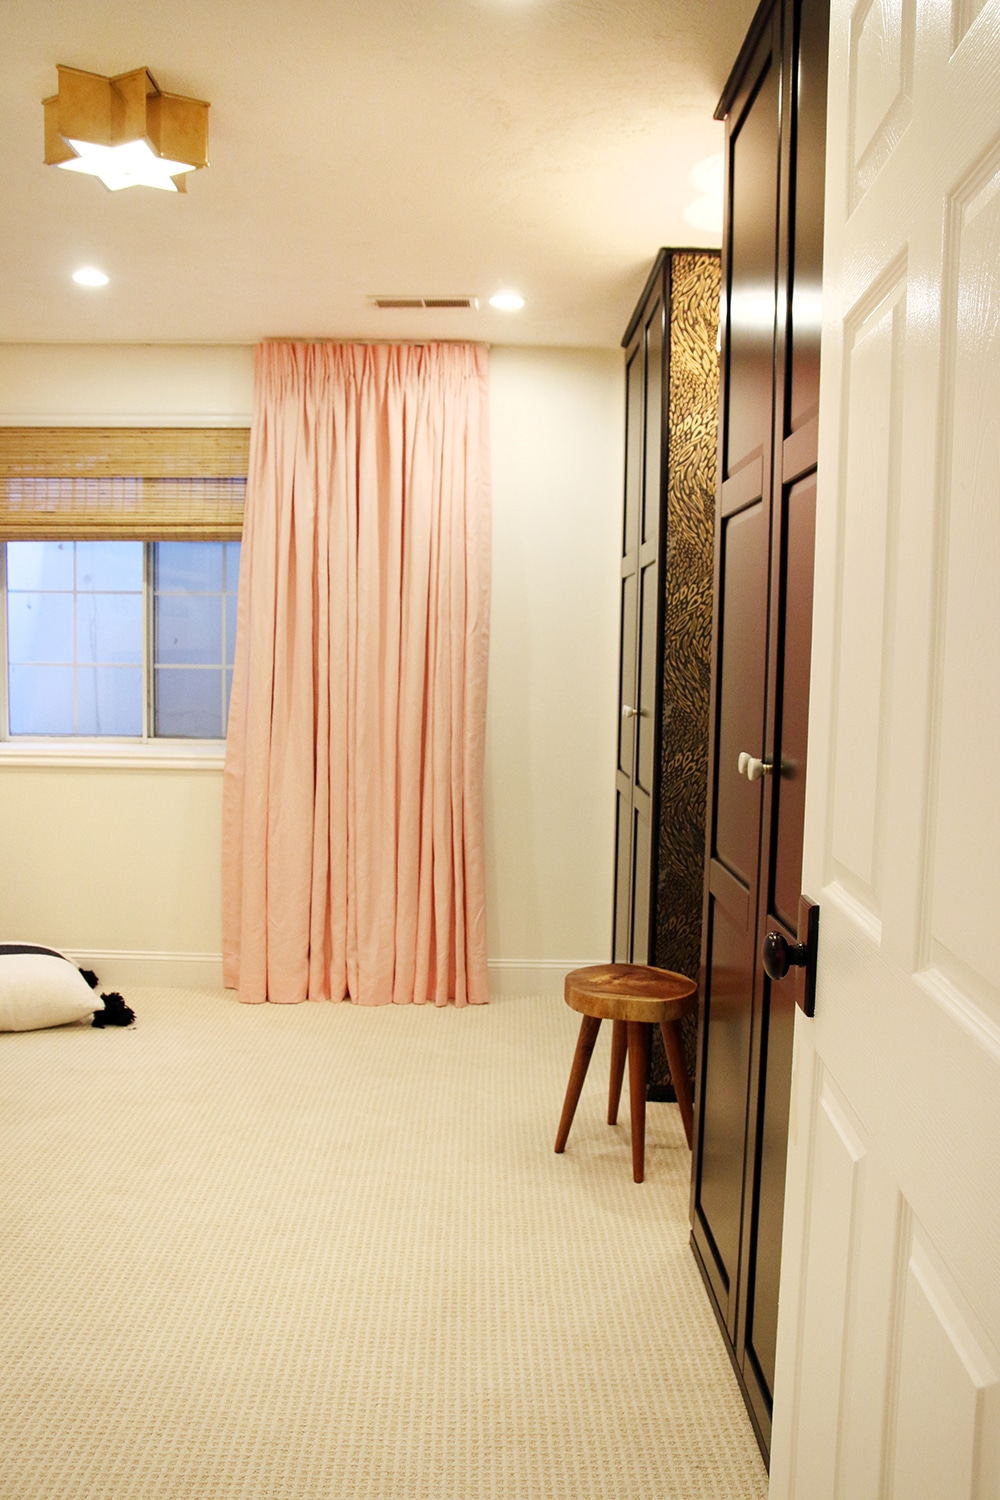 a ceiling mount curtain rod  chris loves julia - floor to ceiling pink curtains with a ceiling mount rod